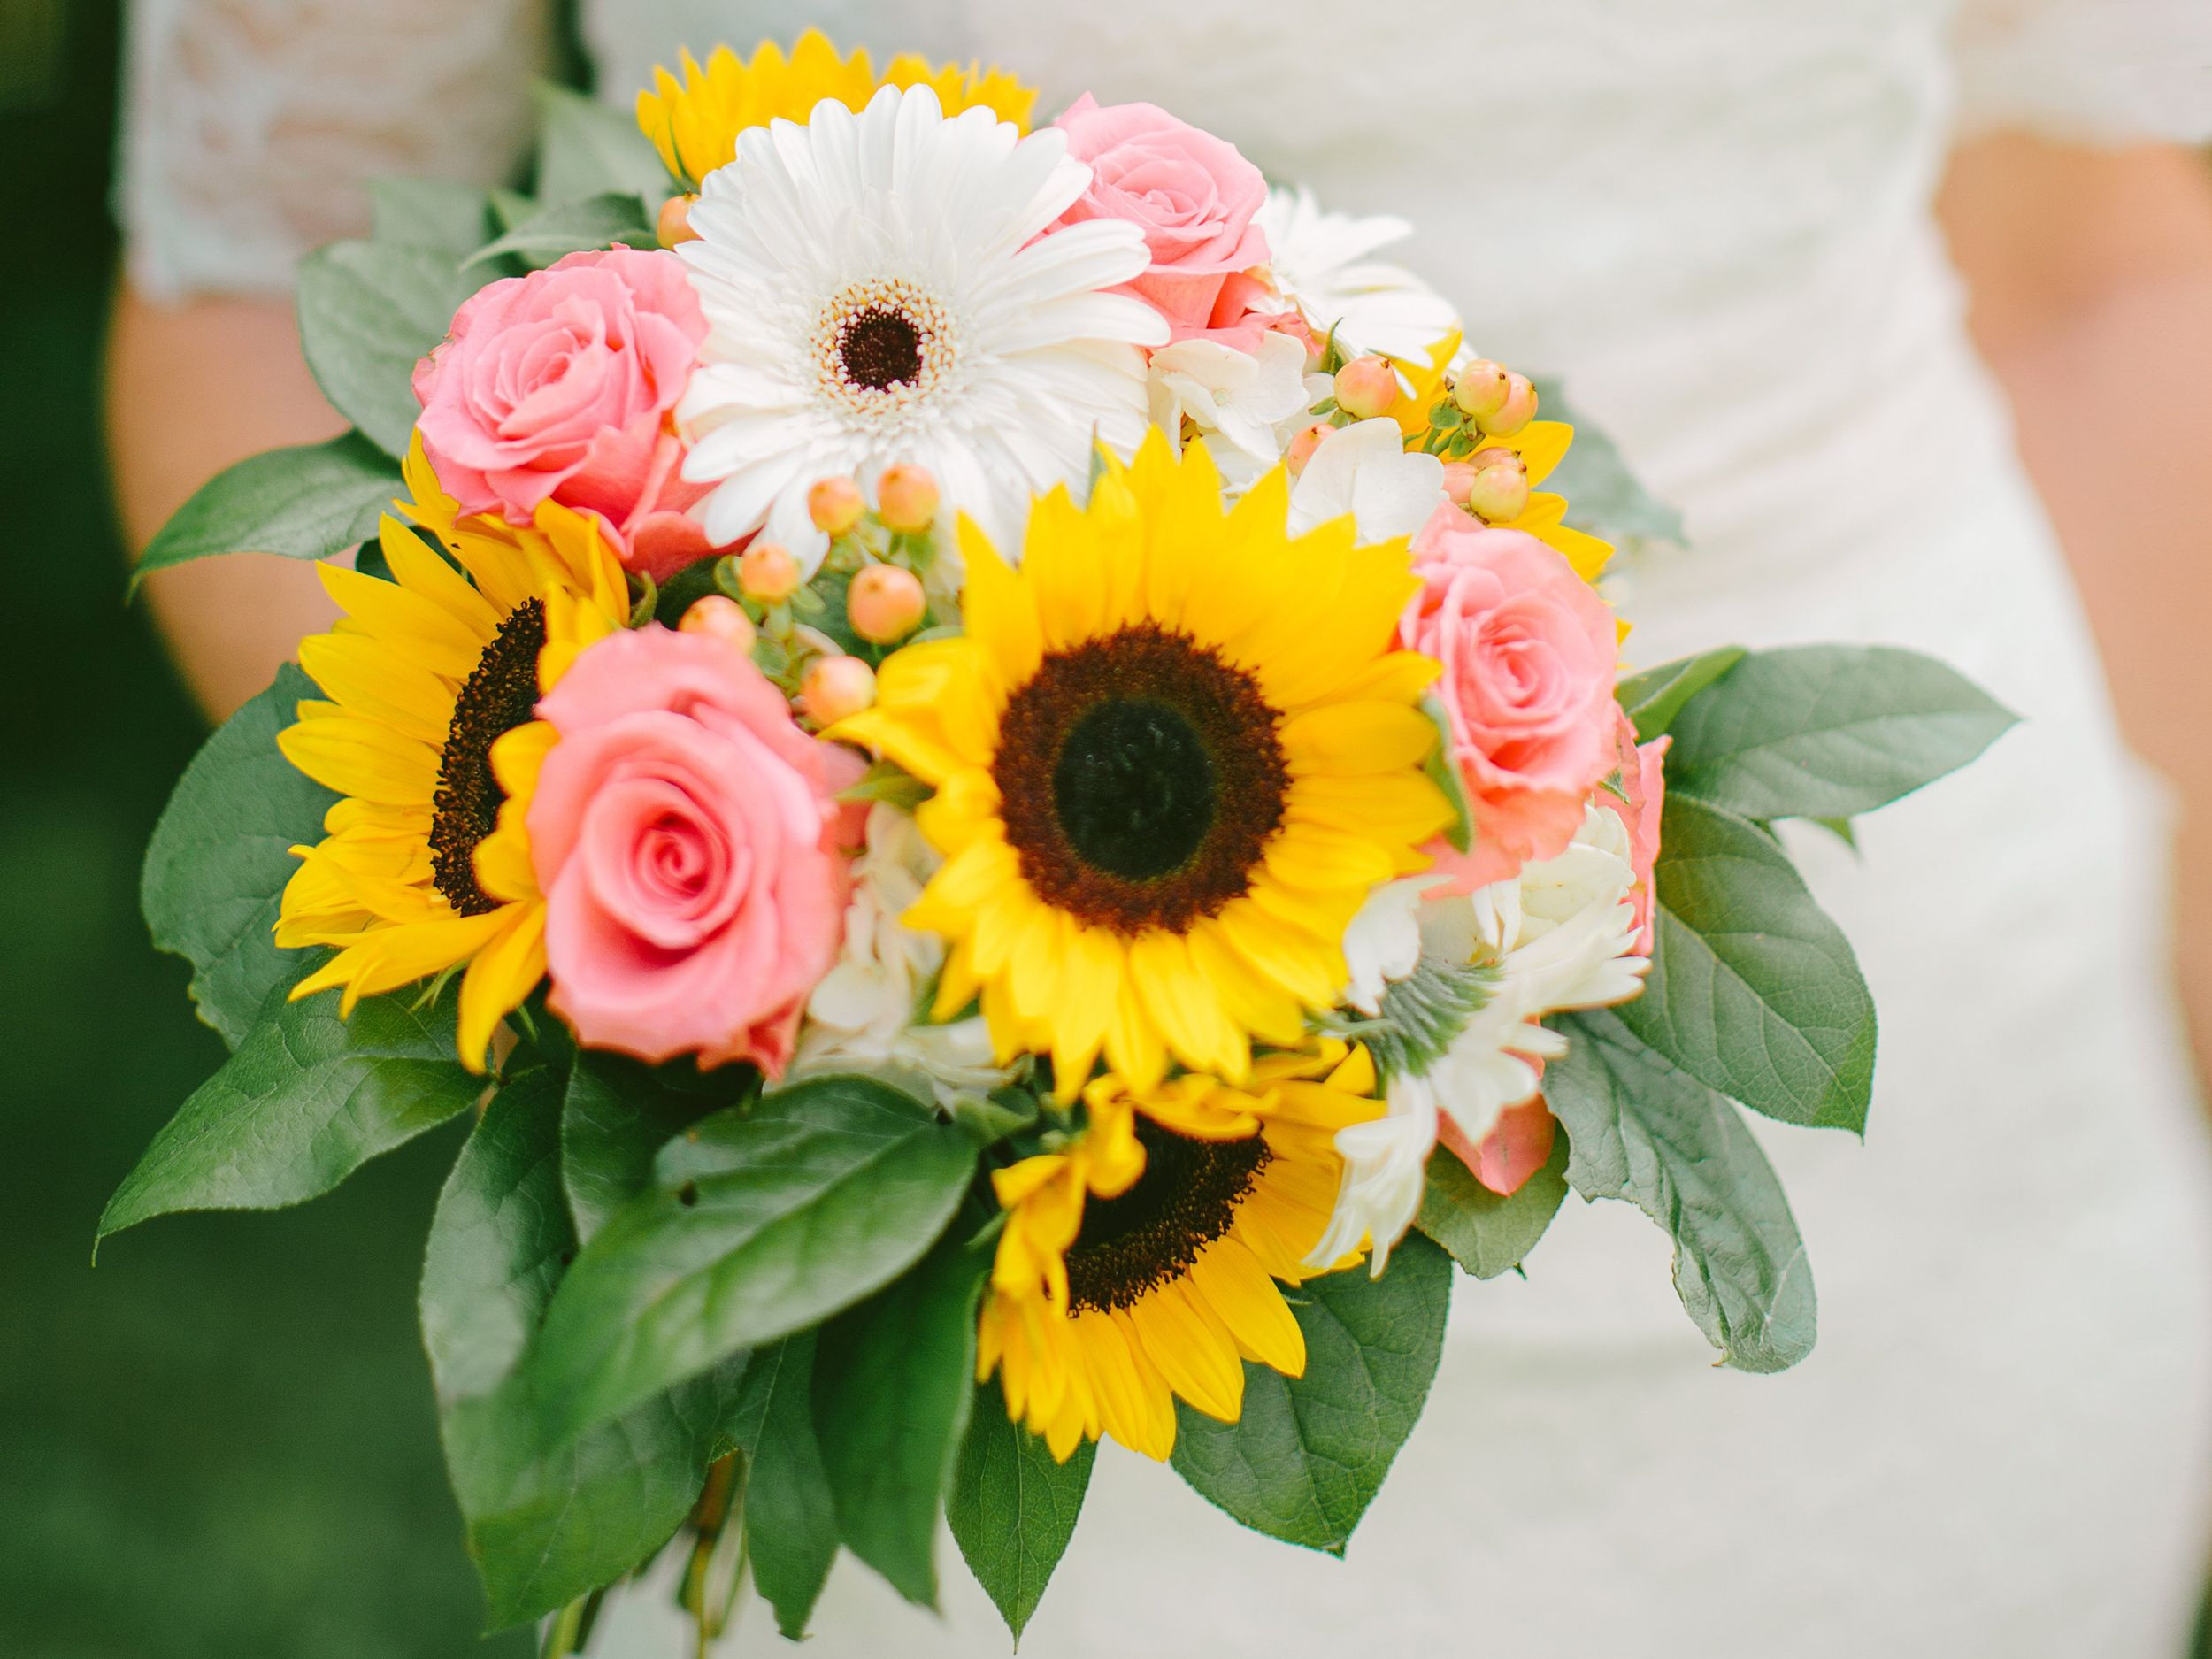 Top 10 most inexpensive but totally beautiful flowers pinterest the top 10 most inexpensive but totally beautiful flowers photo by jenny haas photography theknot izmirmasajfo